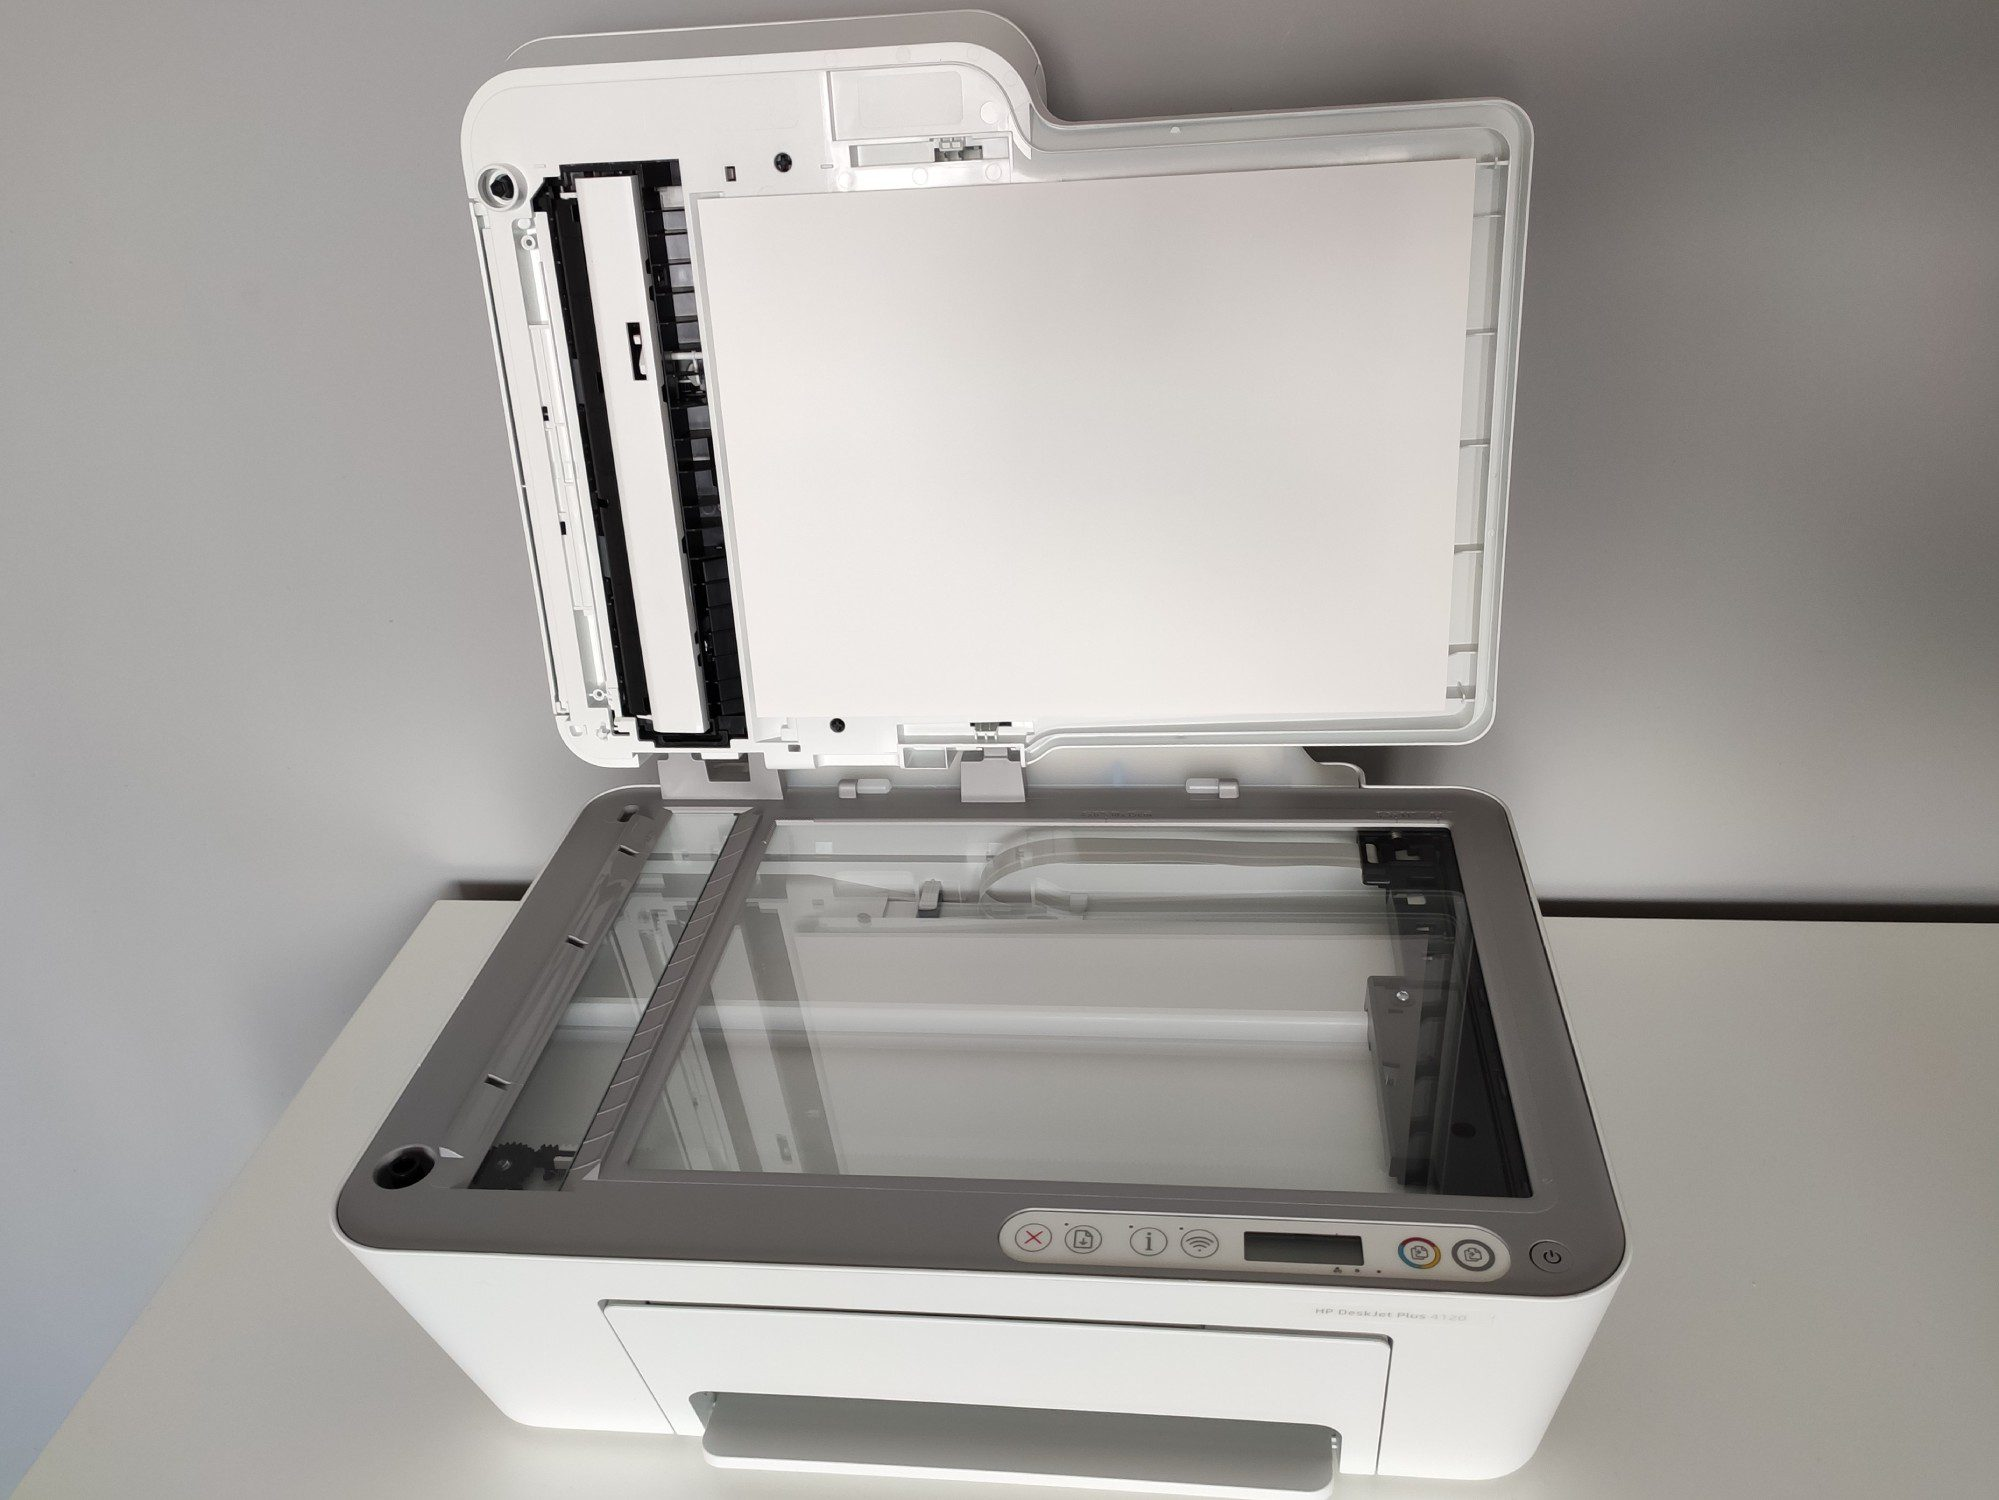 hp deskjet 4120 plus skaner